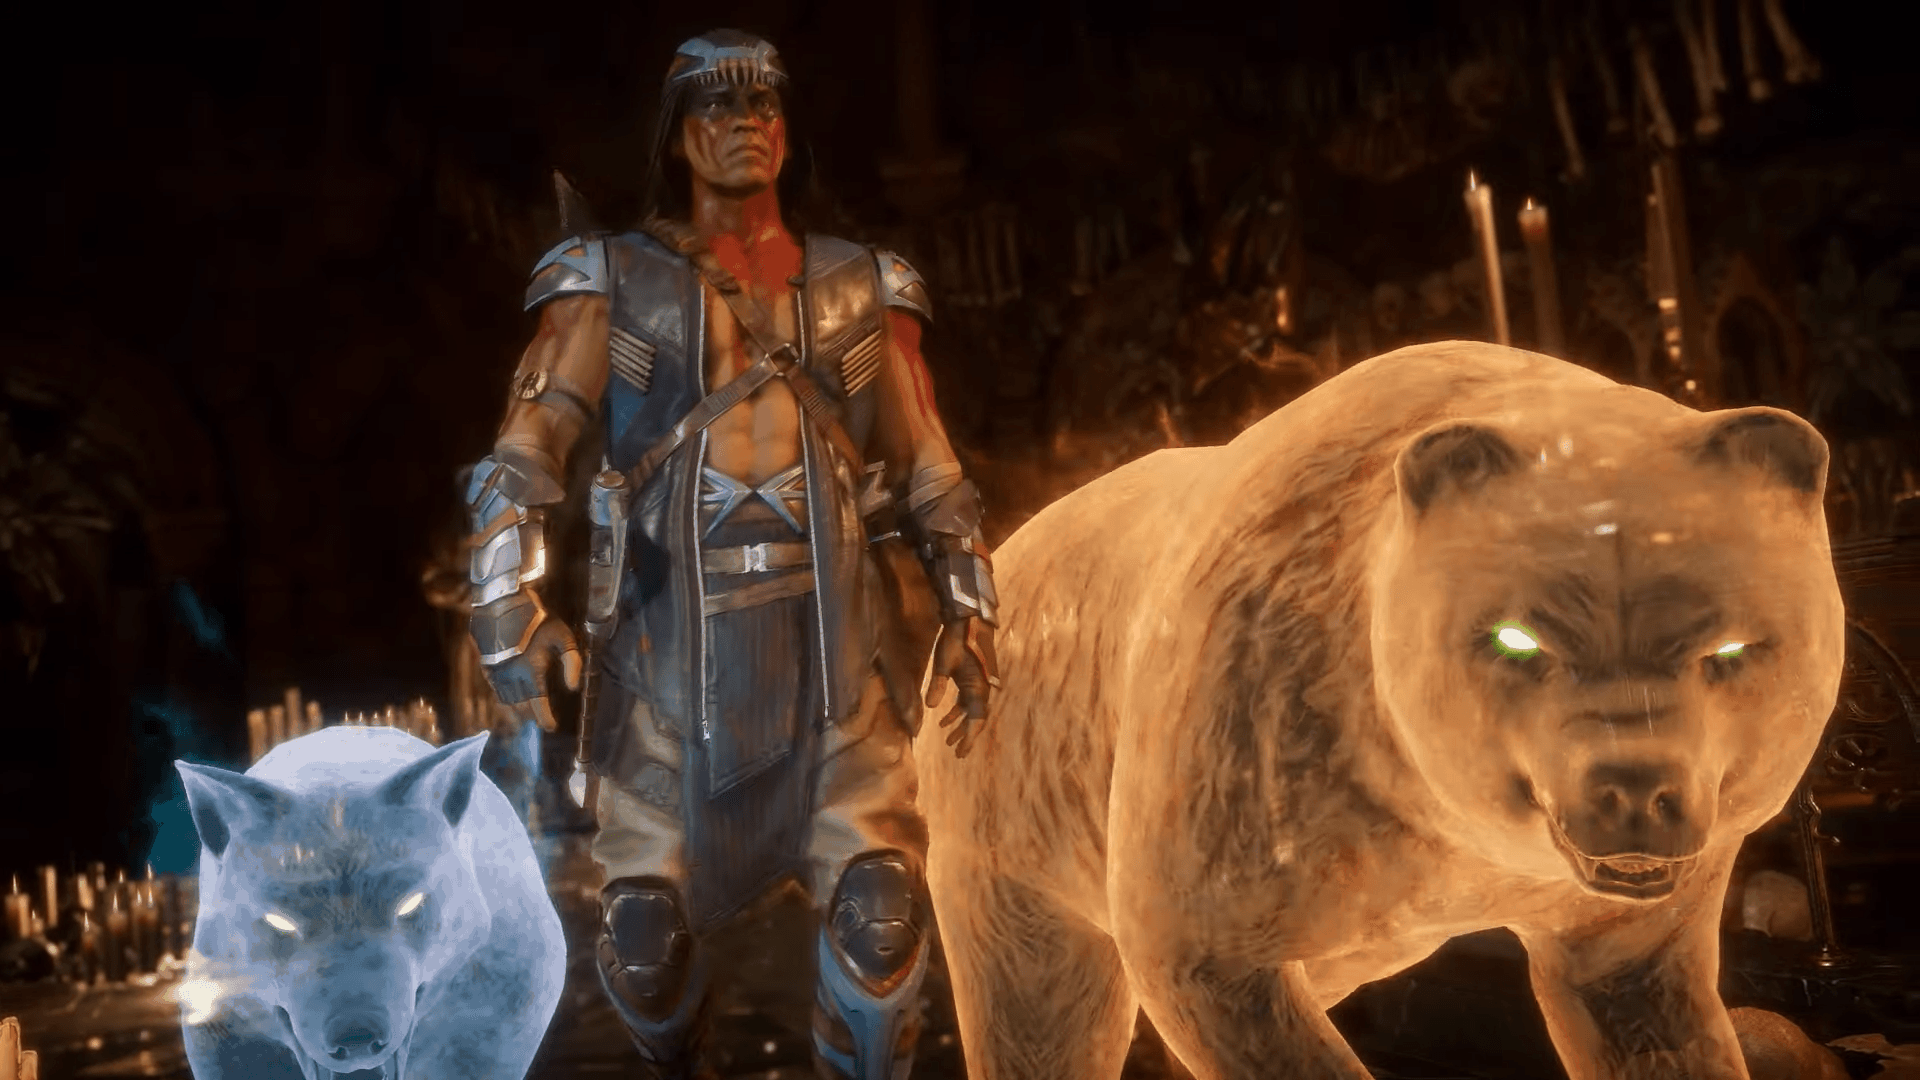 New Mortal Kombat 11 Gameplay Trailer Showcases The Next Playable Character – Nightwolf